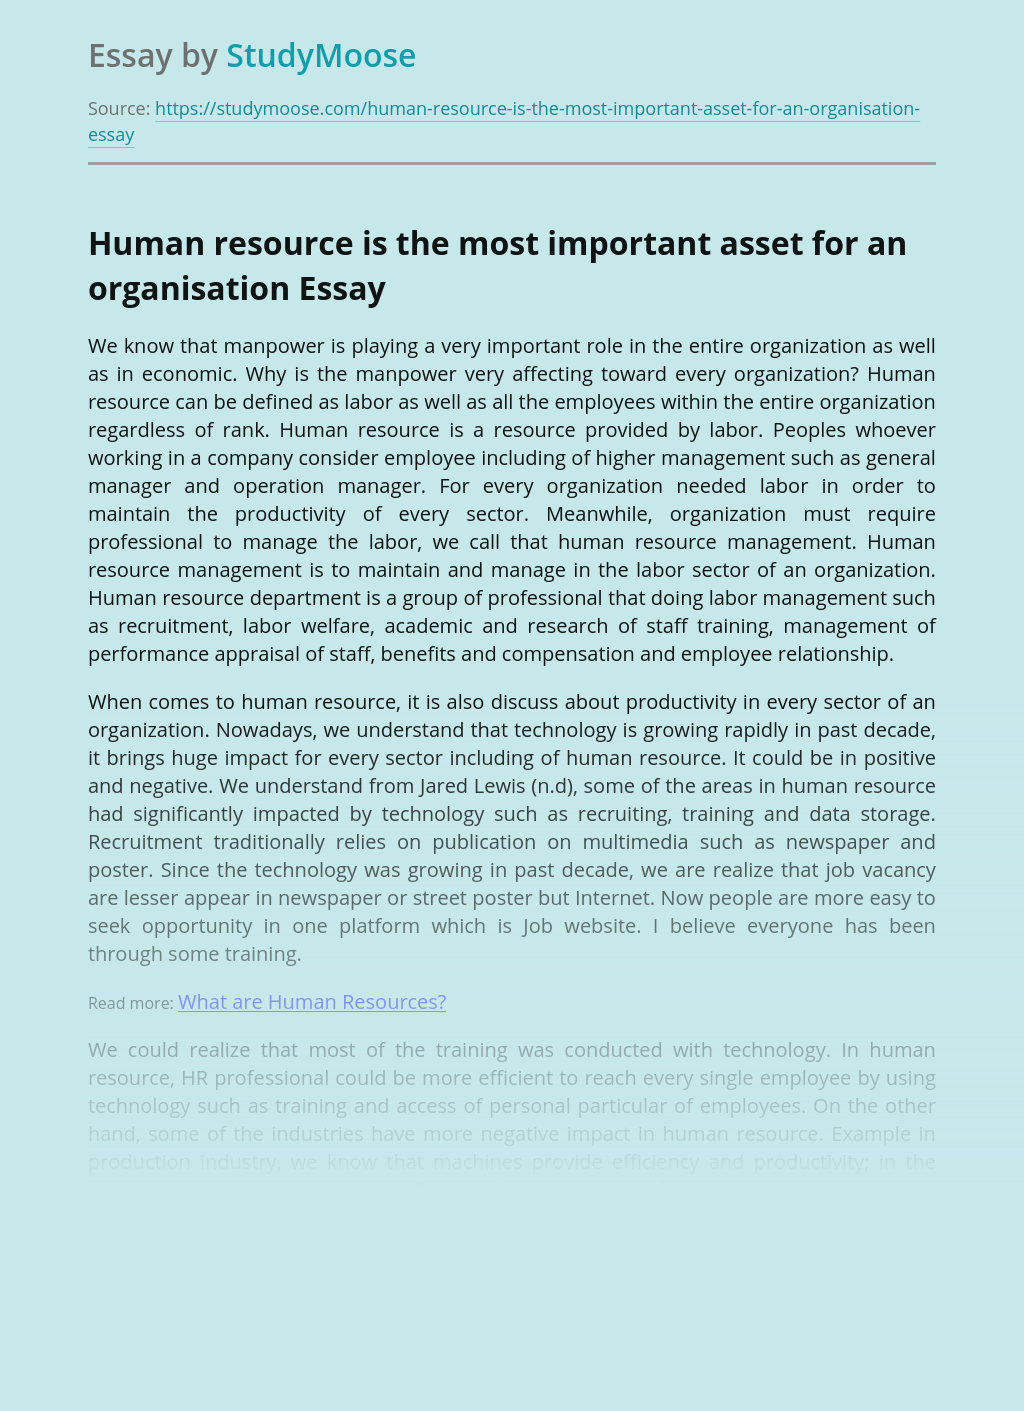 Human resource is the most important asset for an organisation